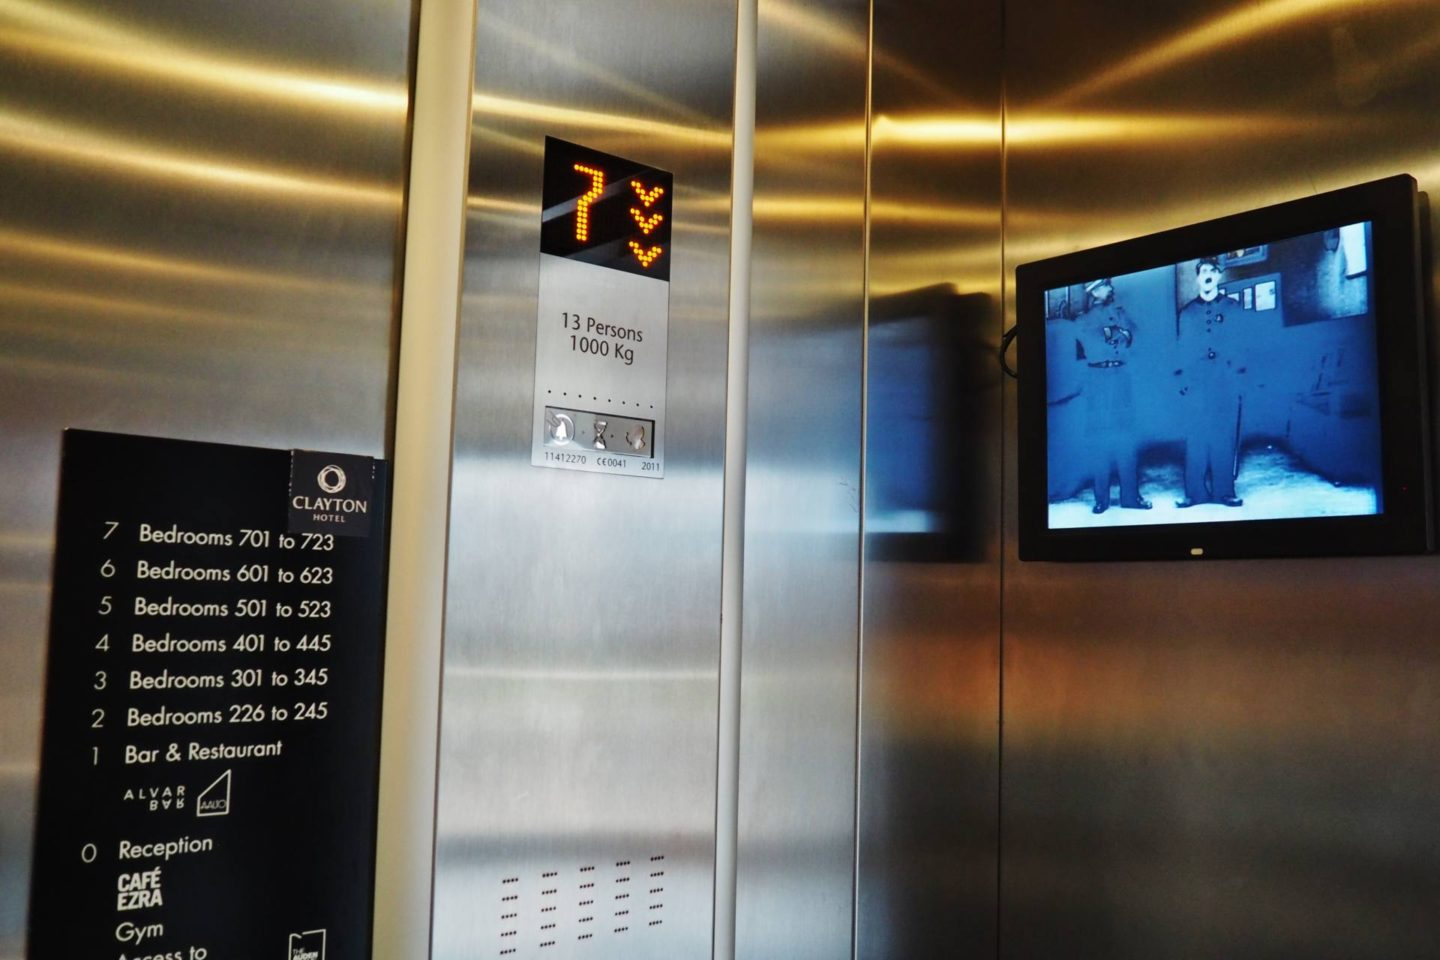 Clayton Hotel Lift Films